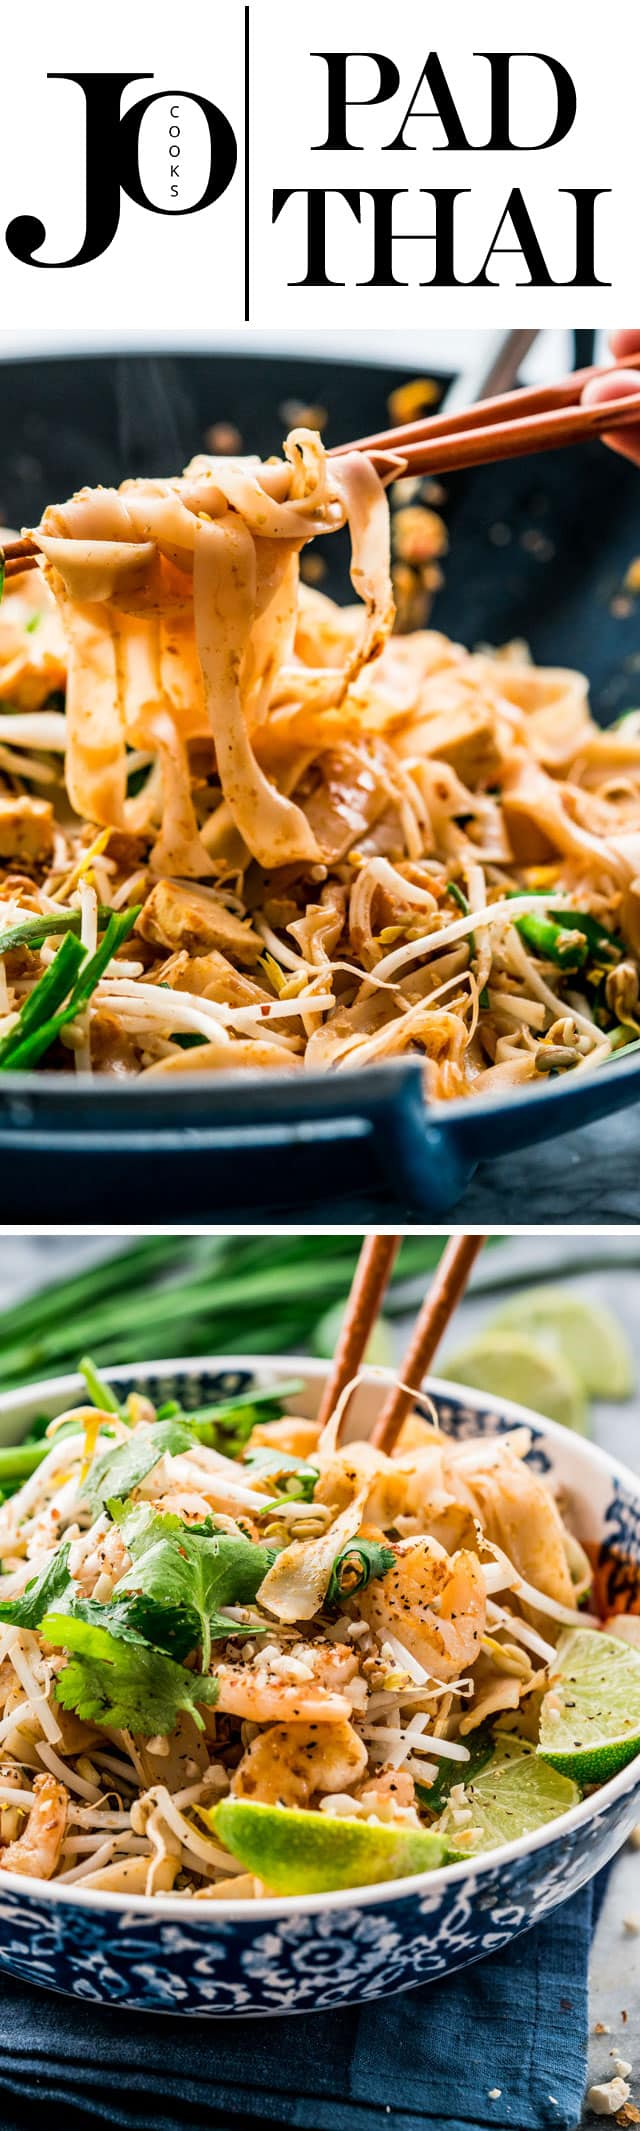 This Pad Thai with shrimp and tofu gives you all the flavors and taste of the authentic Pad Thai, in the comfort of your home. Who needs takeout when you can do this in less than 30 minutes! www.jocooks.com #padthai #takeoutfakeout